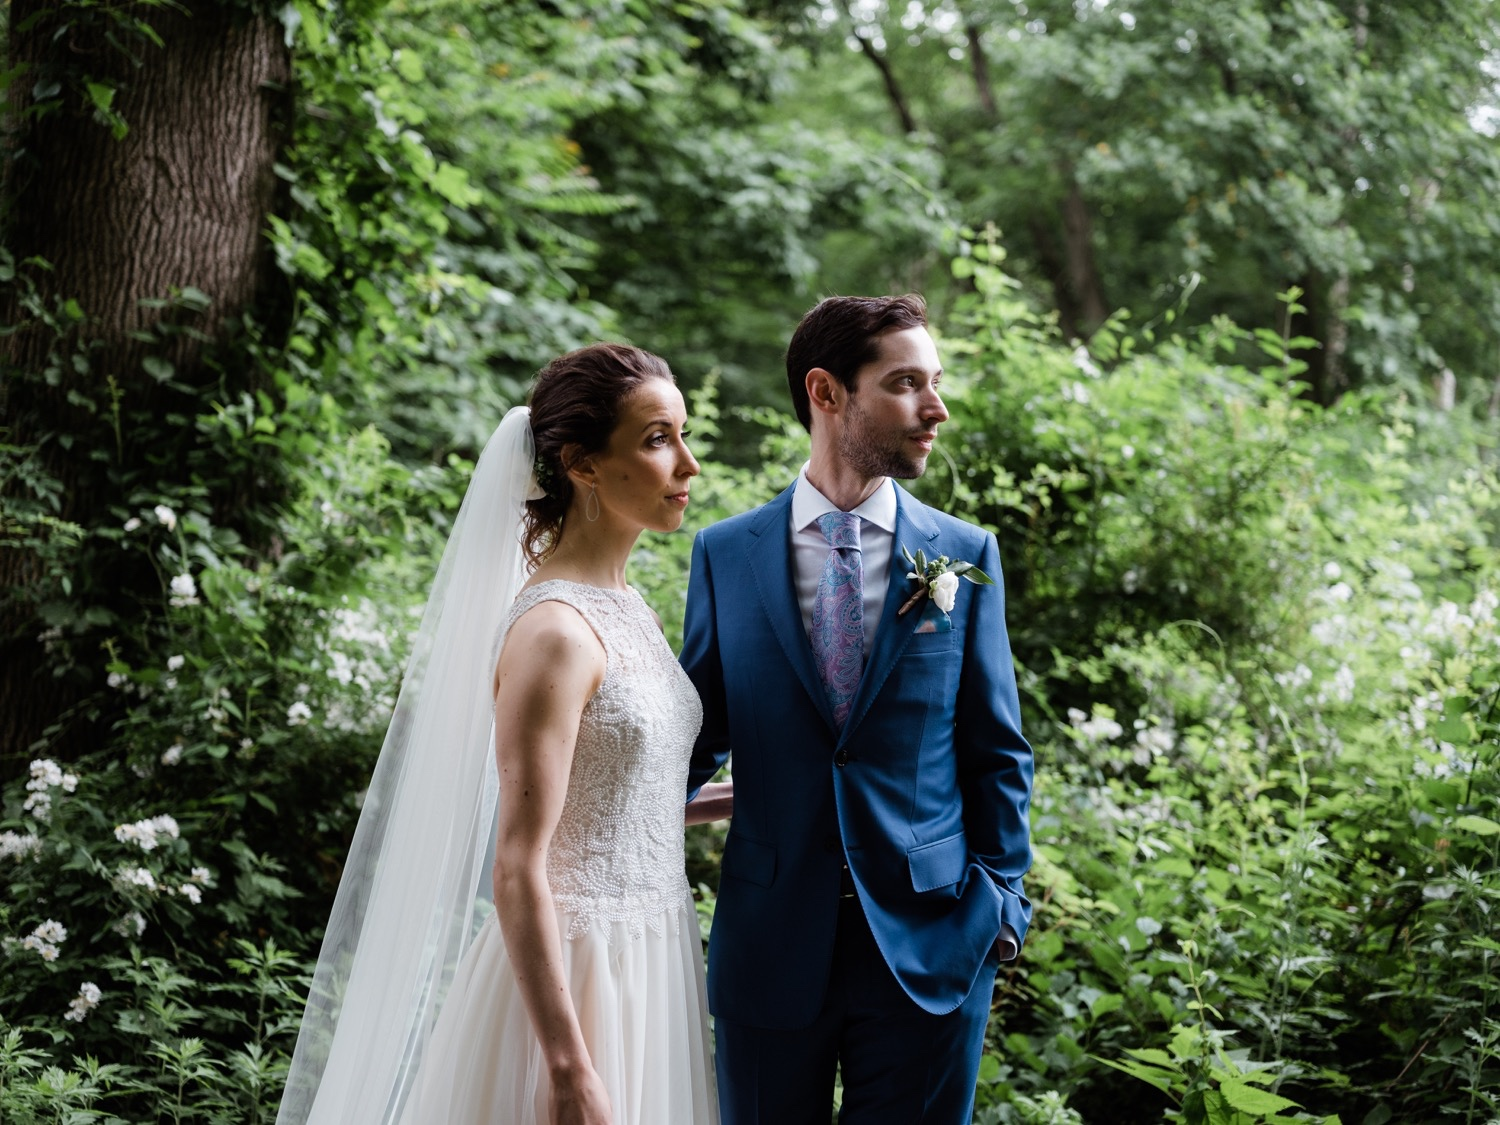 The Garrison Wedding, The Garrison venue, Hudson Valley wedding, hudson valley wedding photographer, catskills wedding photographer, the garrison wedding photos, best catskills wedding photographer, wedding pose inspiration